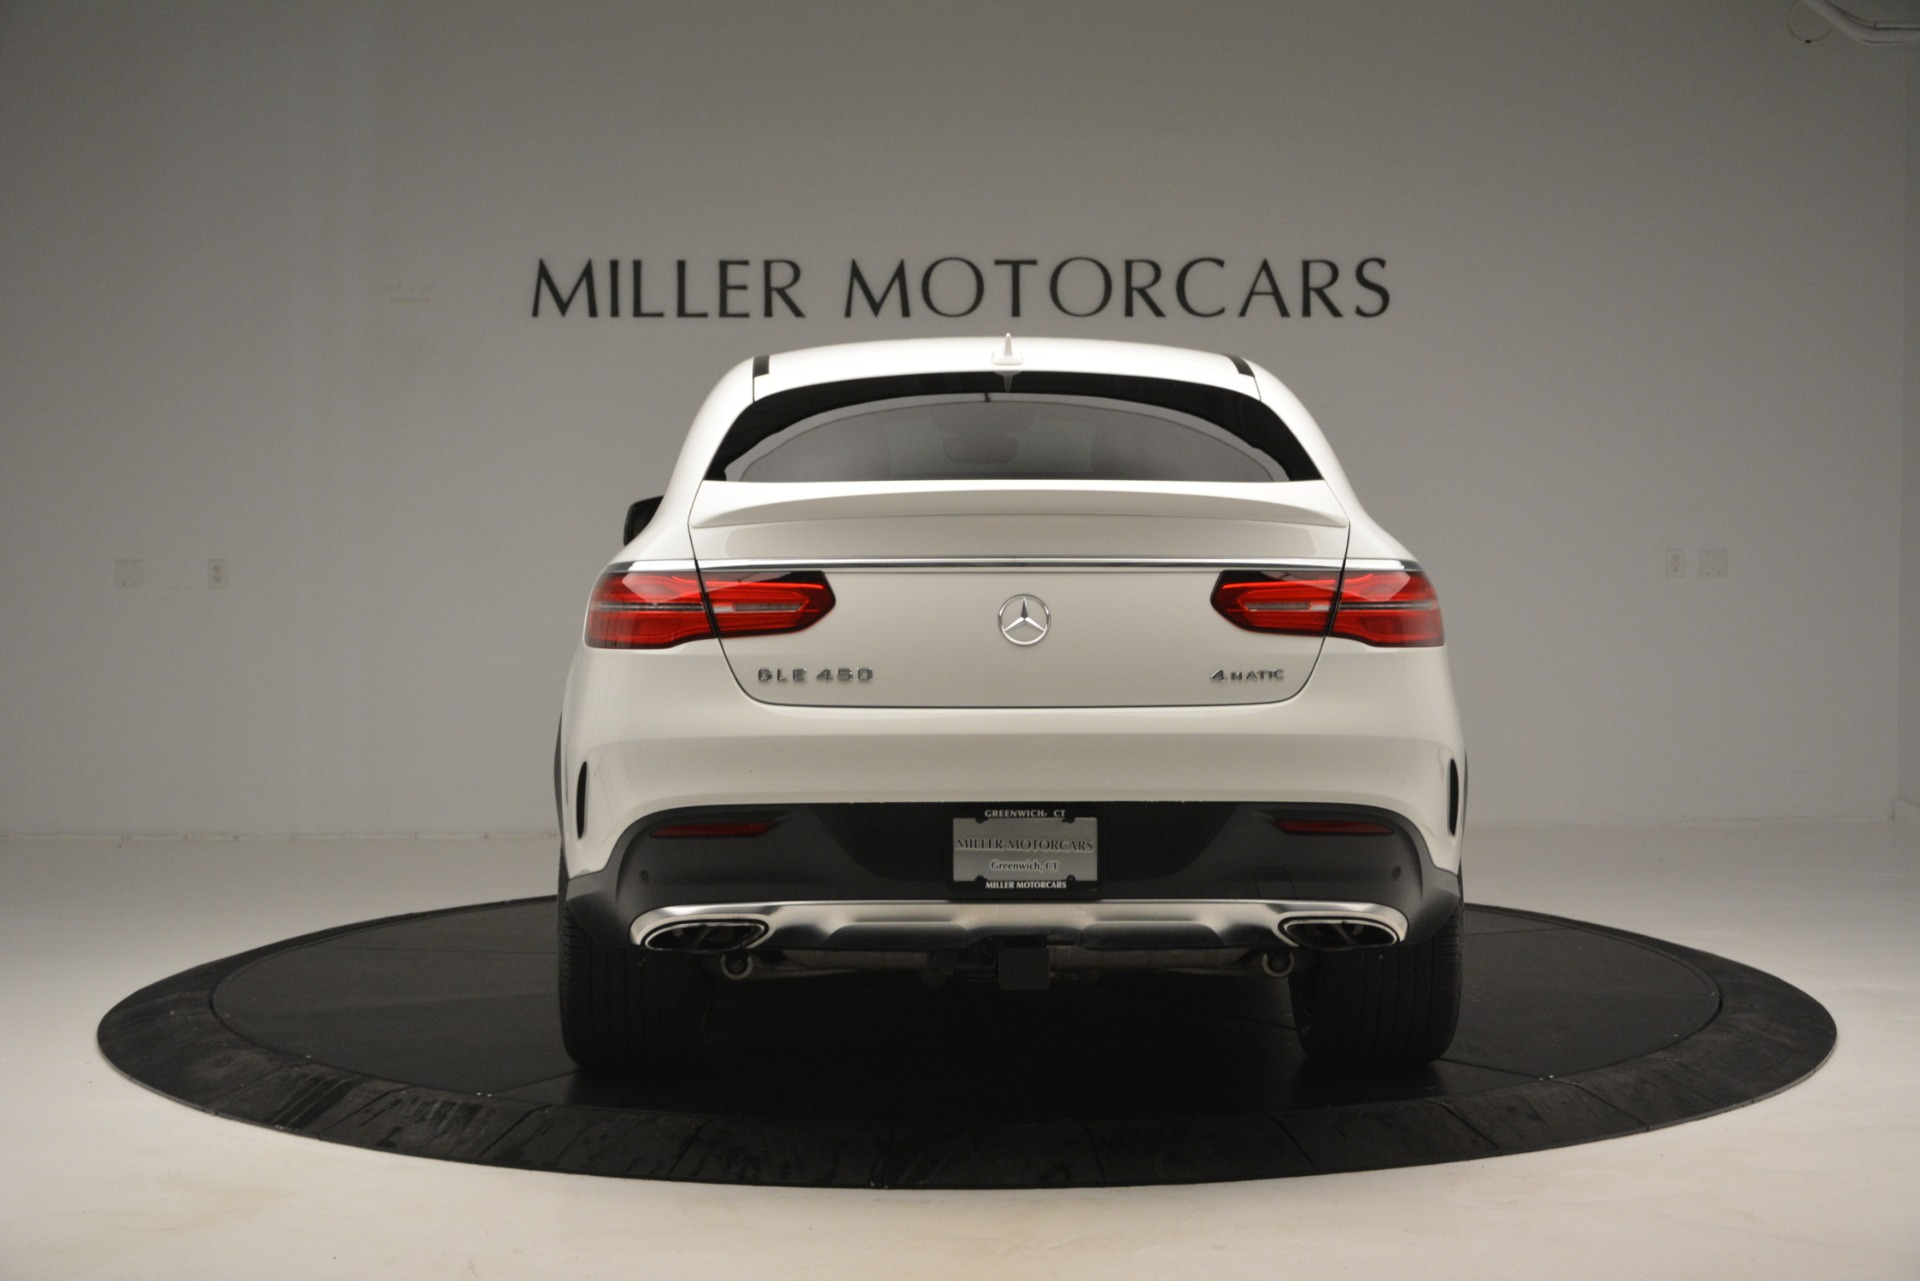 Used 2016 Mercedes-Benz GLE 450 AMG Coupe 4MATIC For Sale In Westport, CT 2787_p6